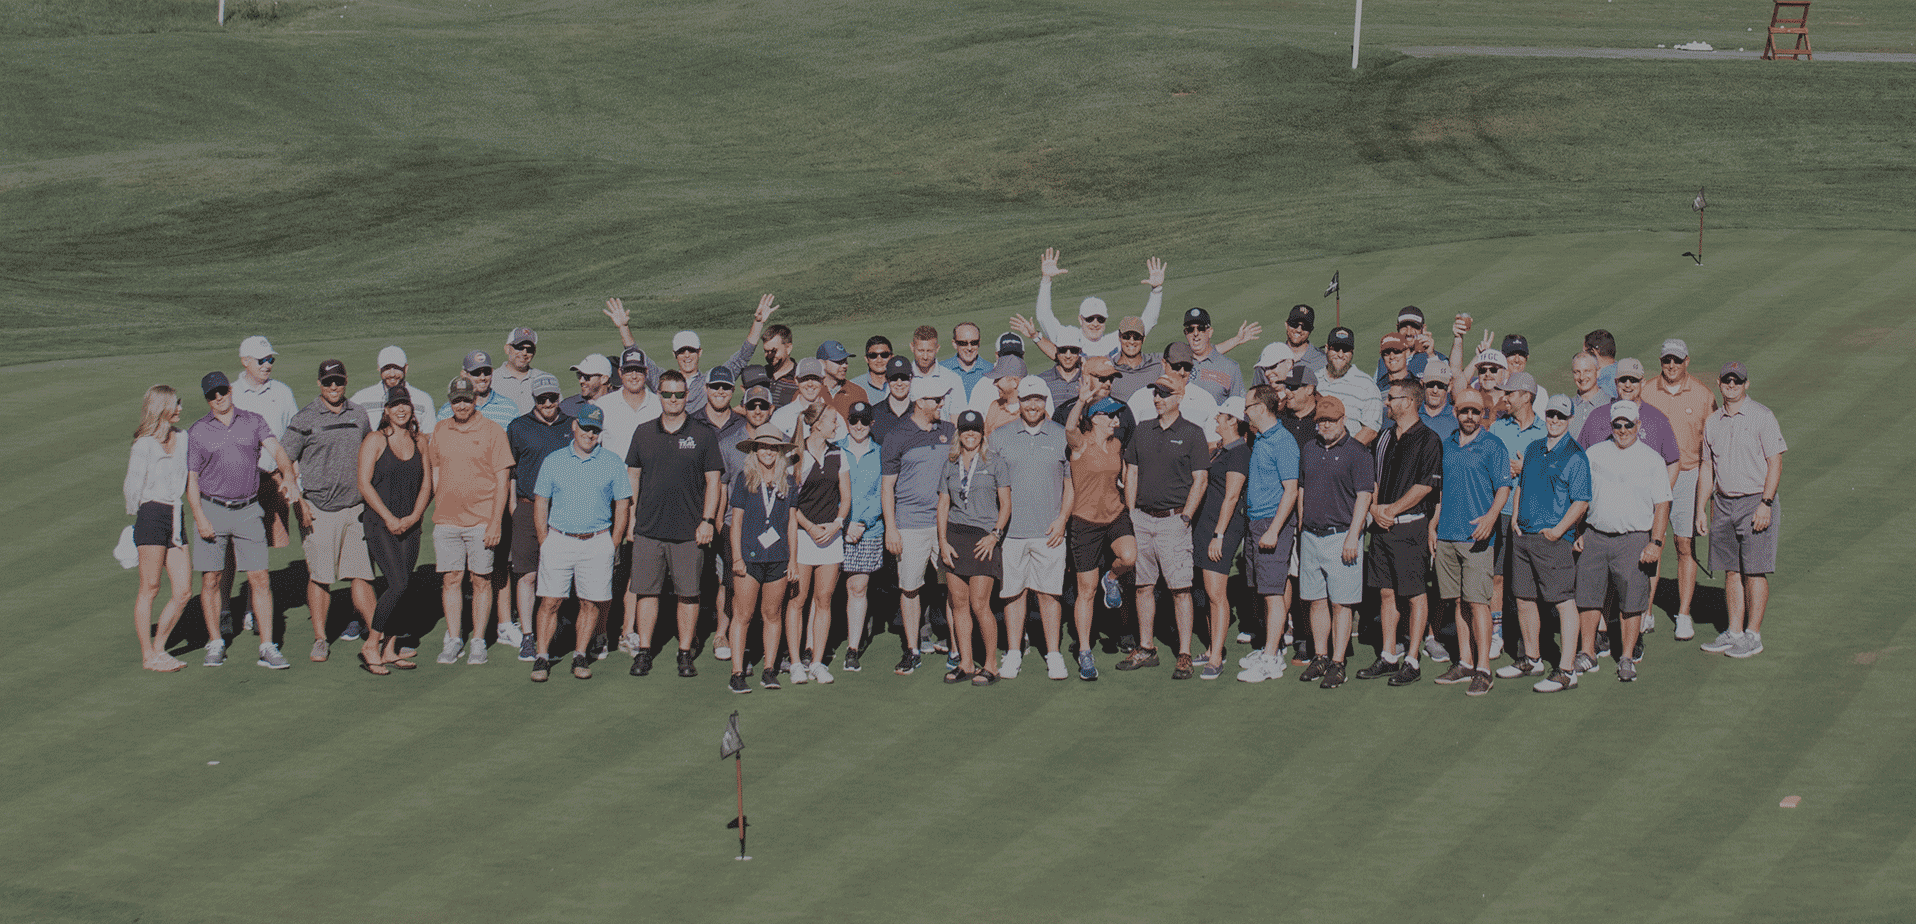 Photo of Colorado BUILT members on golf course at the 2019 Invitational